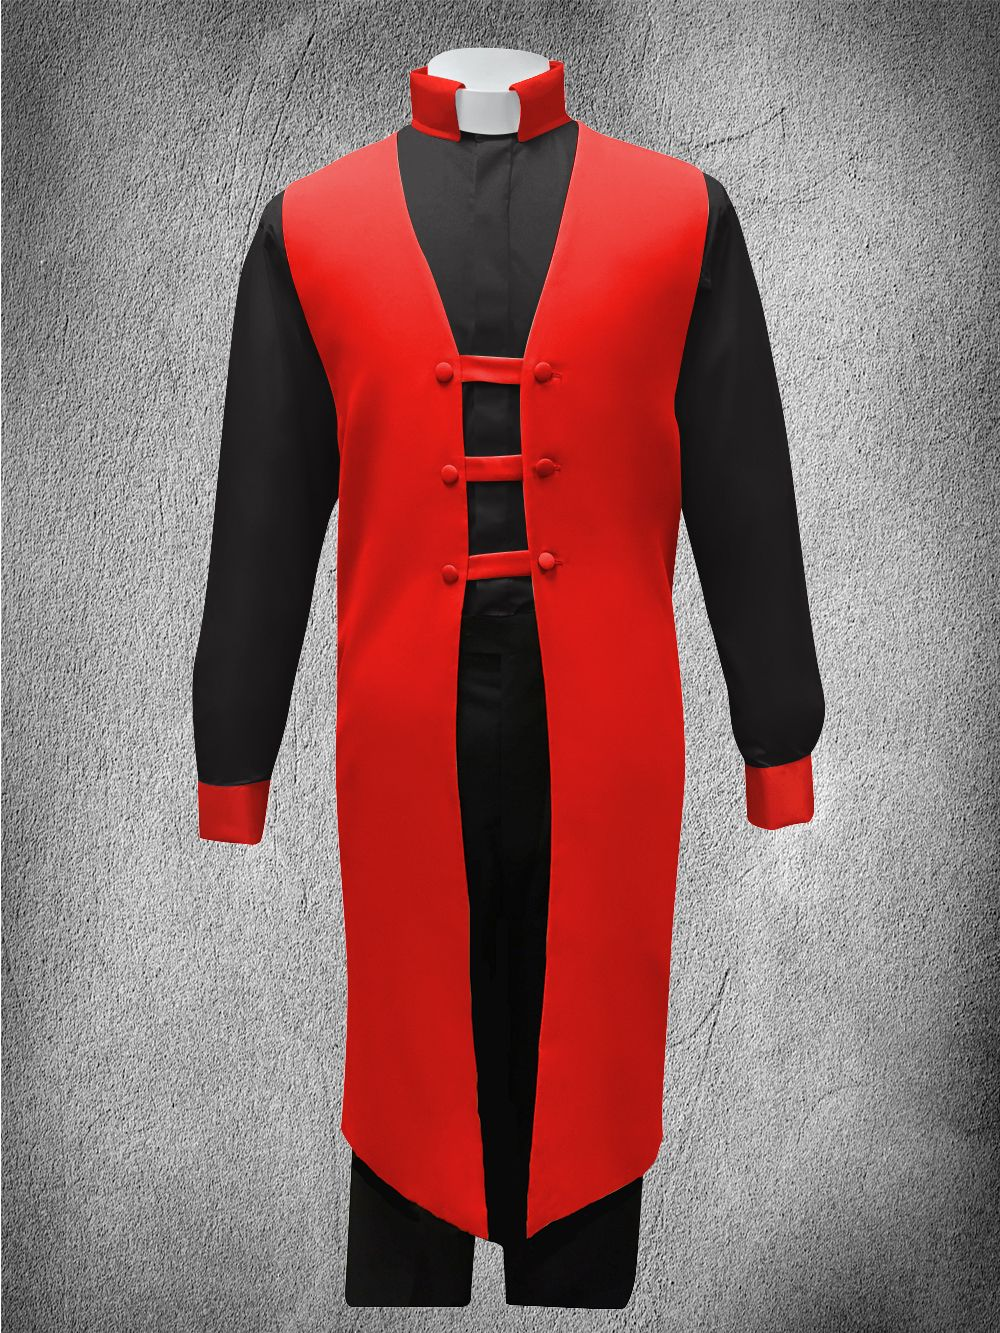 Contrast Ministerial Vesture Set Red/Black-Red